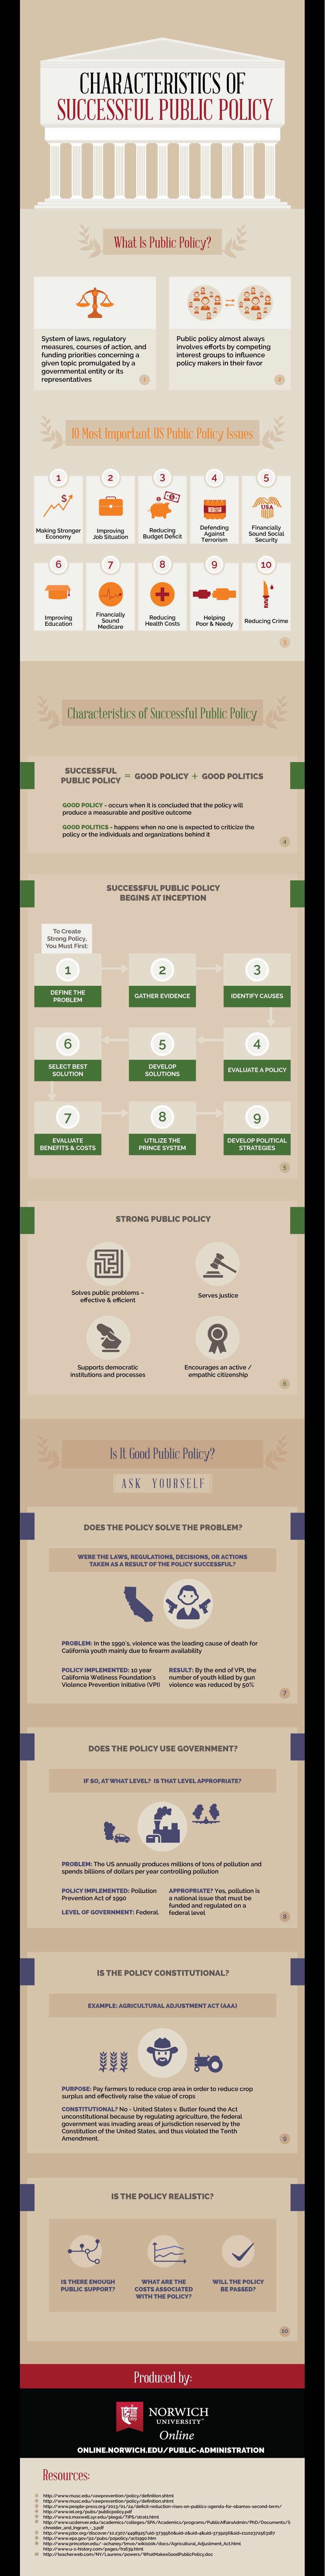 public policy infographic image